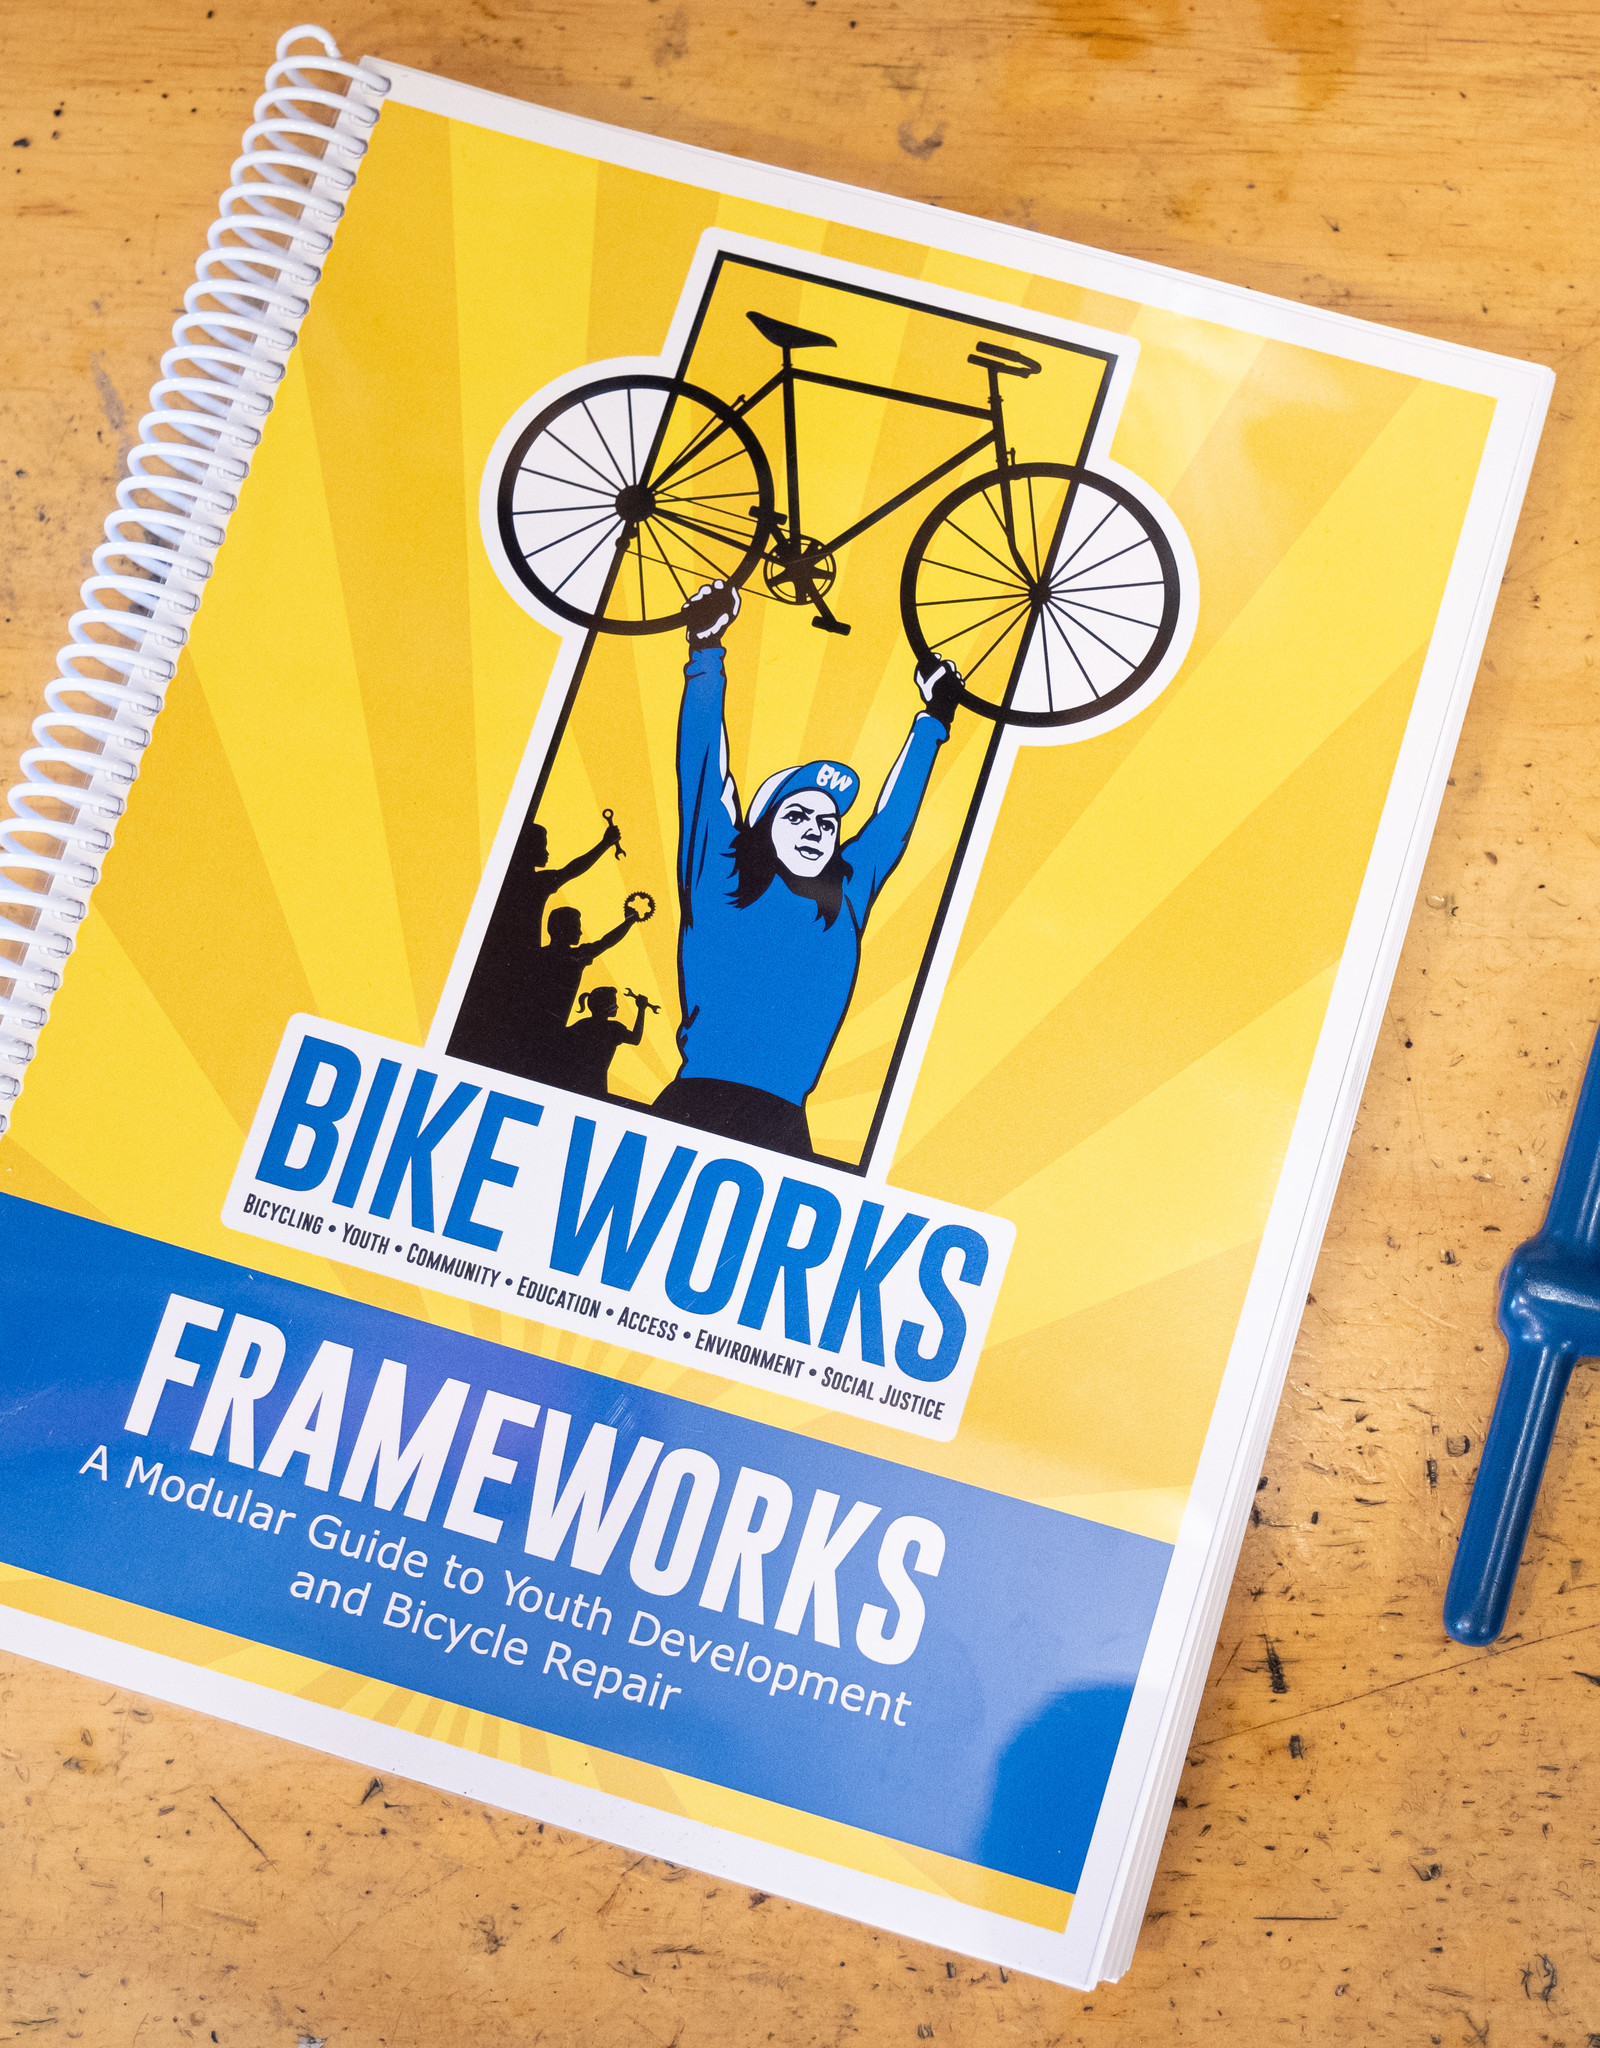 Bike Works Frameworks -  A Modular Guide to Youth Development & Bicycle Repair